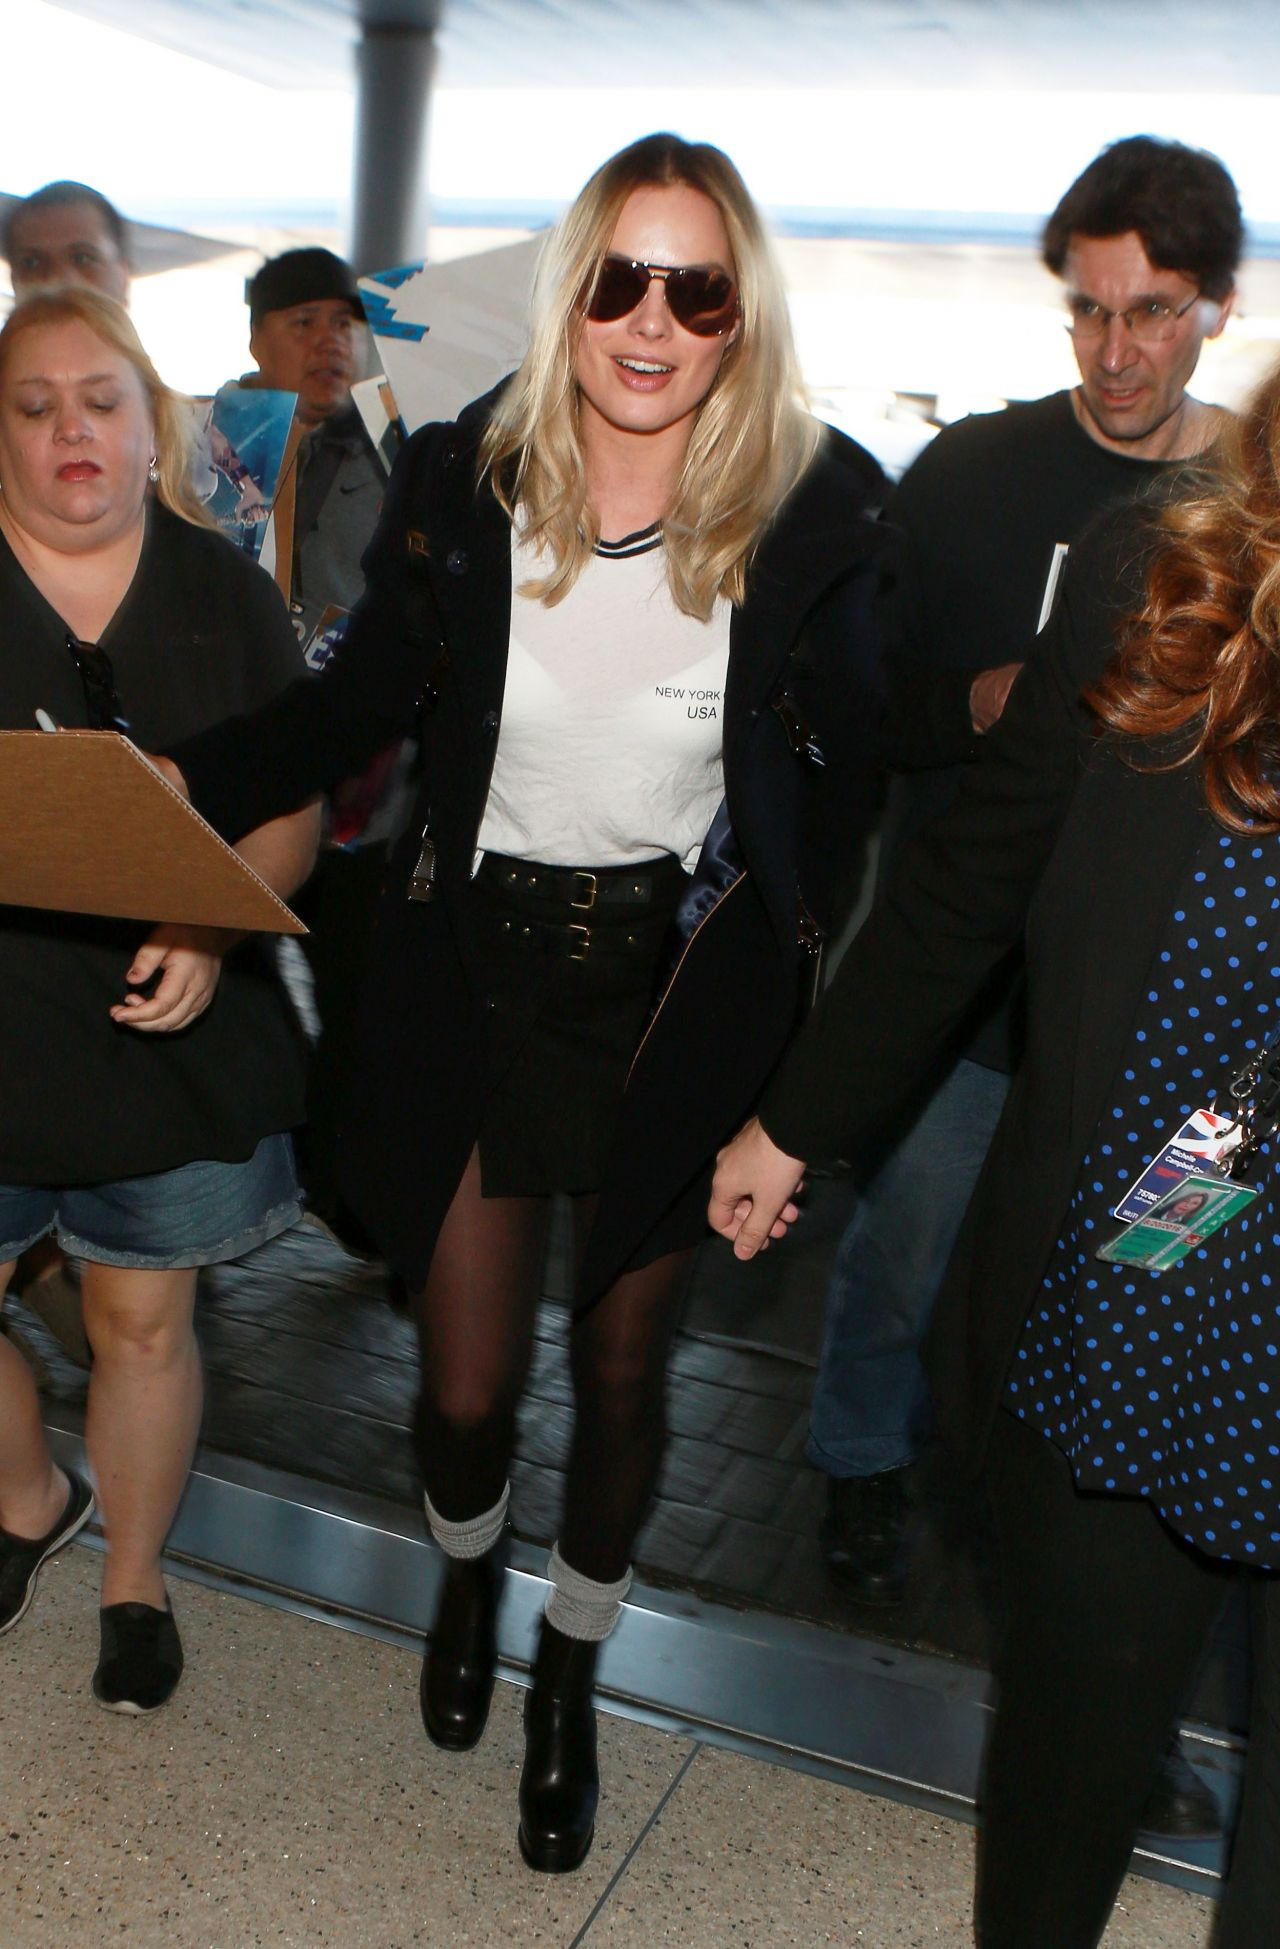 Margot robbie at lax airport in los angeles naked (98 photos), Instagram Celebrites pictures